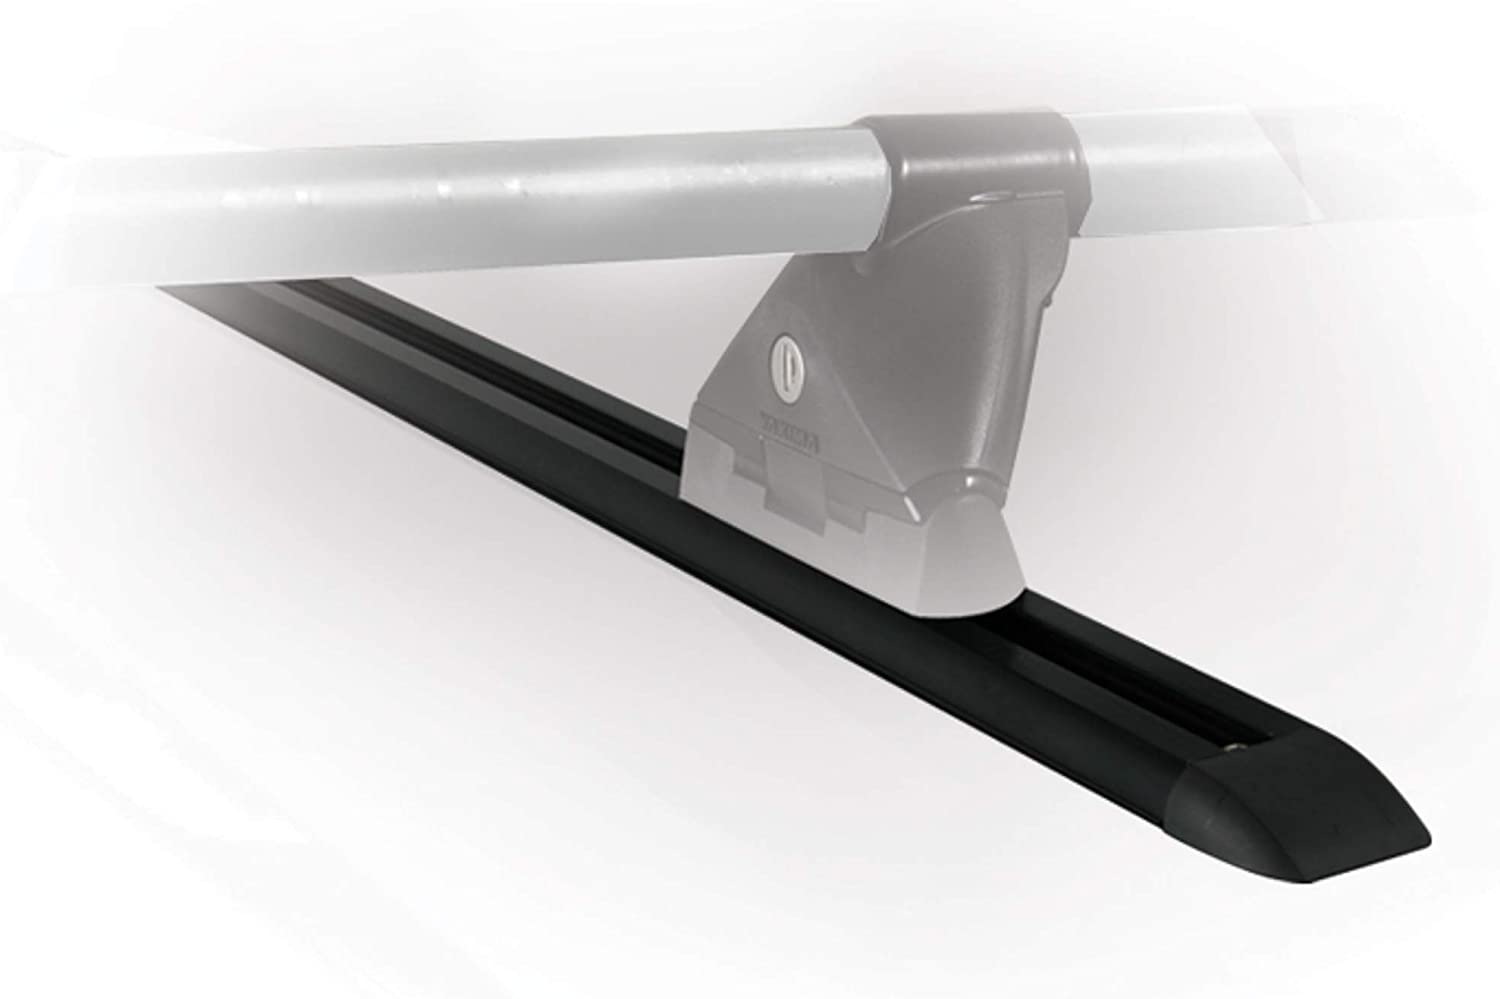 54 inch Yakima Tracks w//PlusNuts Low Profile Track for Rooftop Car Rack System